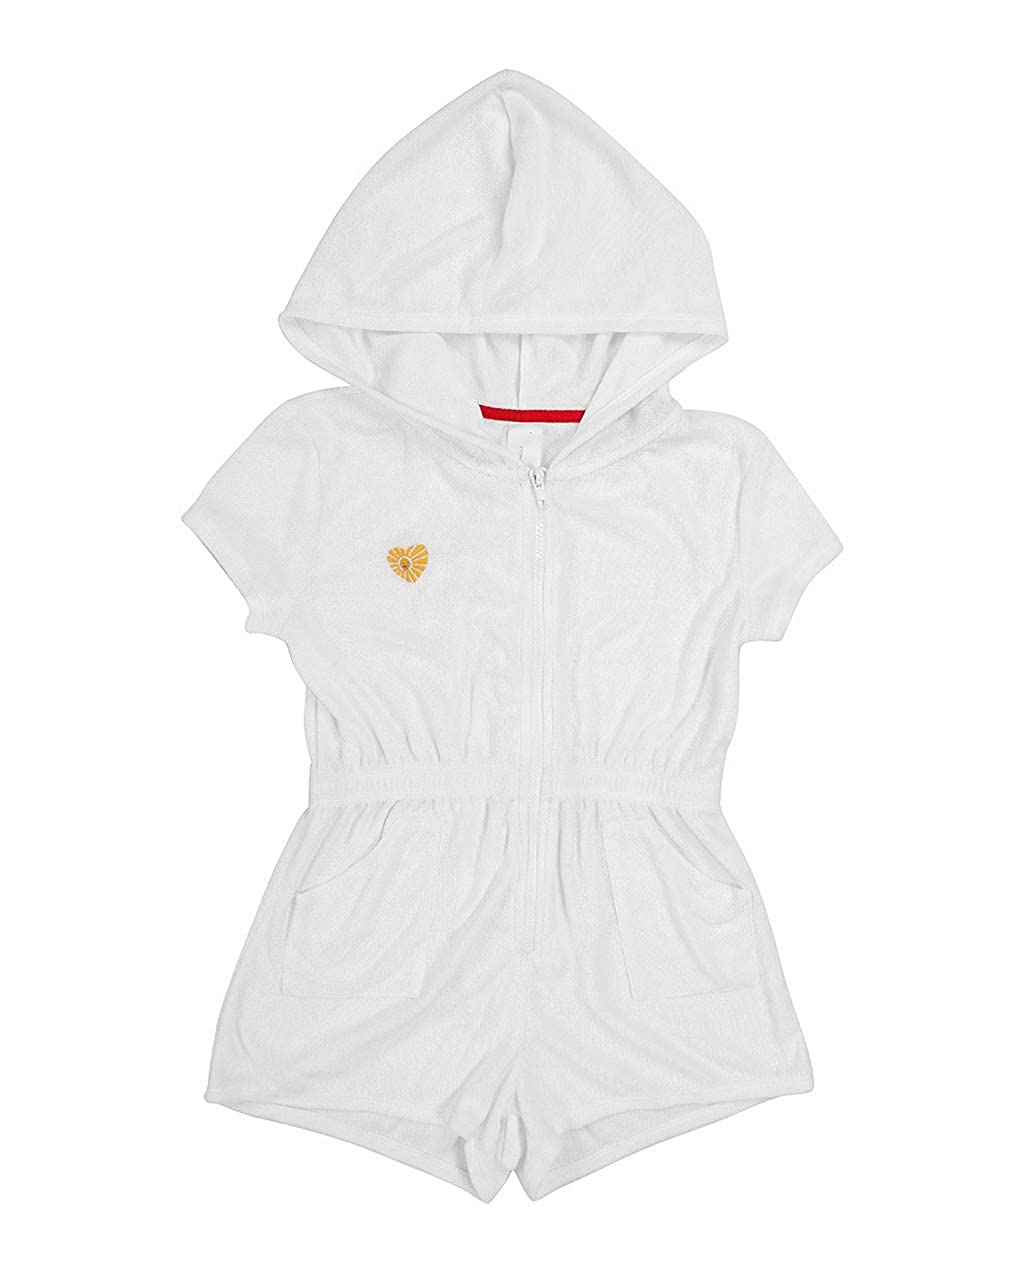 UDIY Kids Terry Cloth Hooded Swim Cover Up Zip Front Beach Coverups